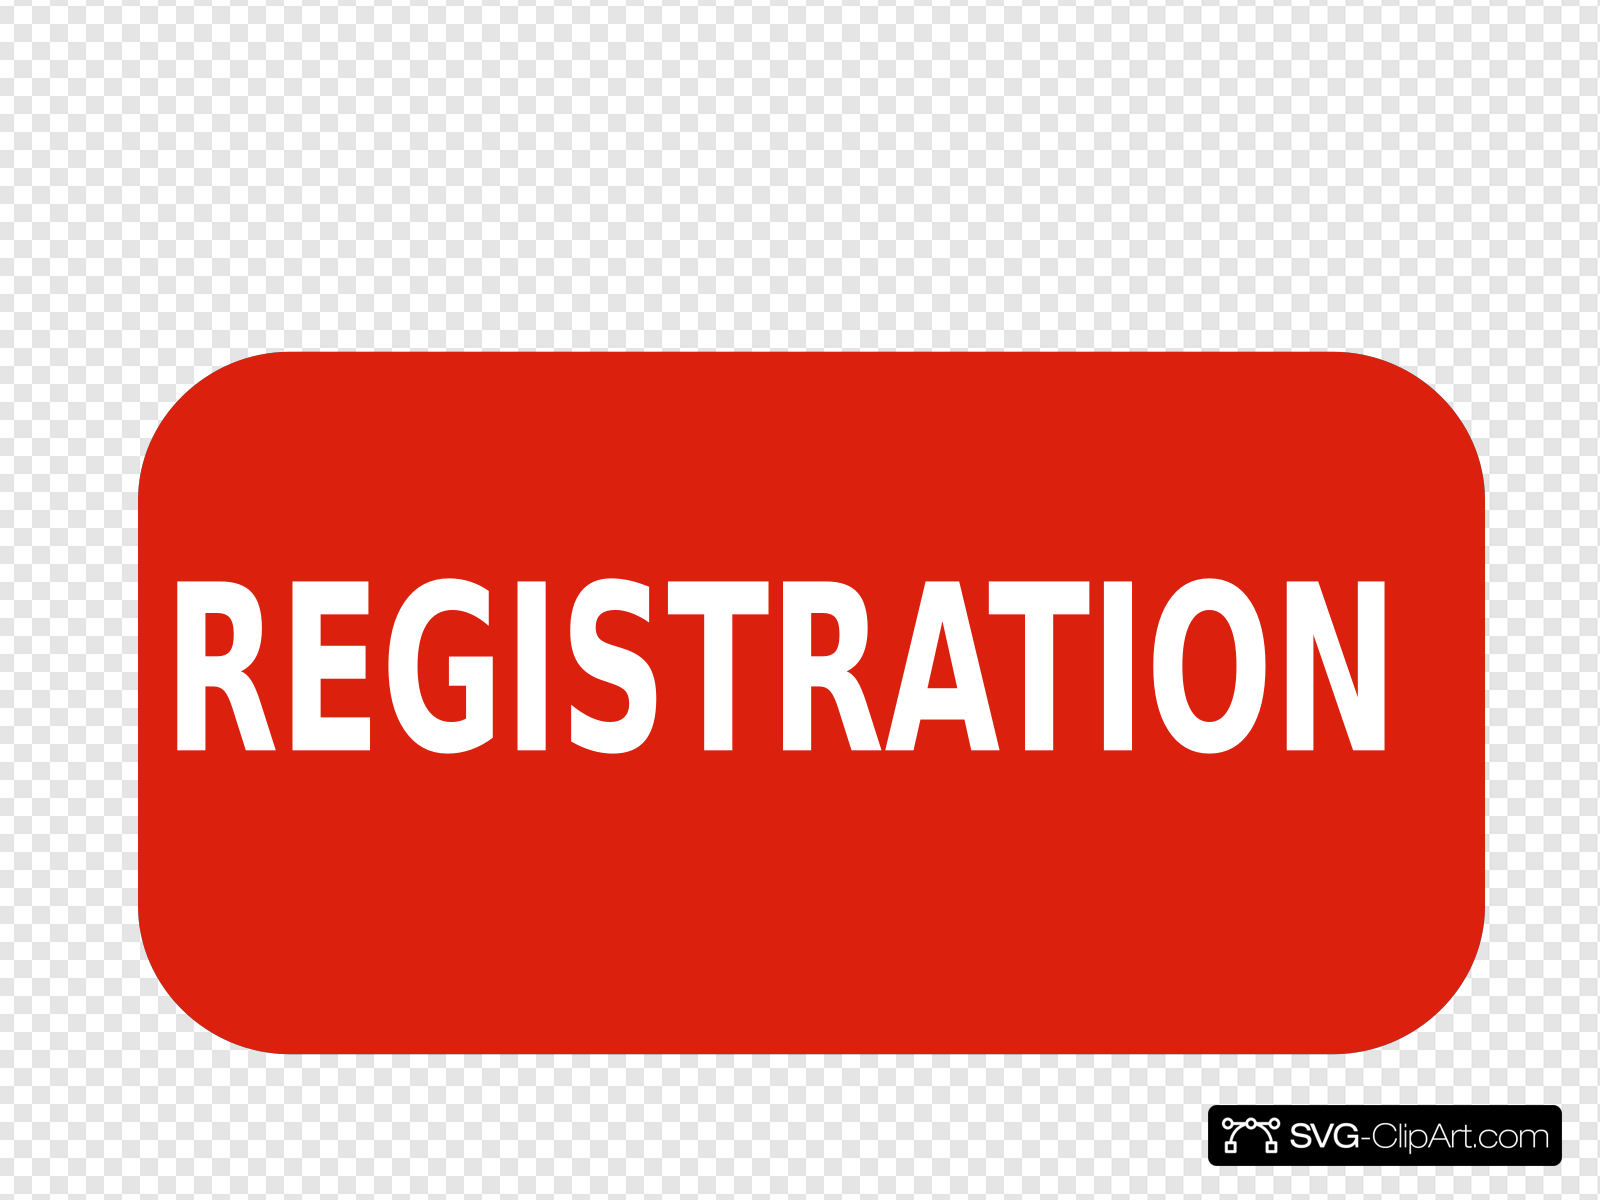 Registration Red Sign Clip art, Icon and SVG.